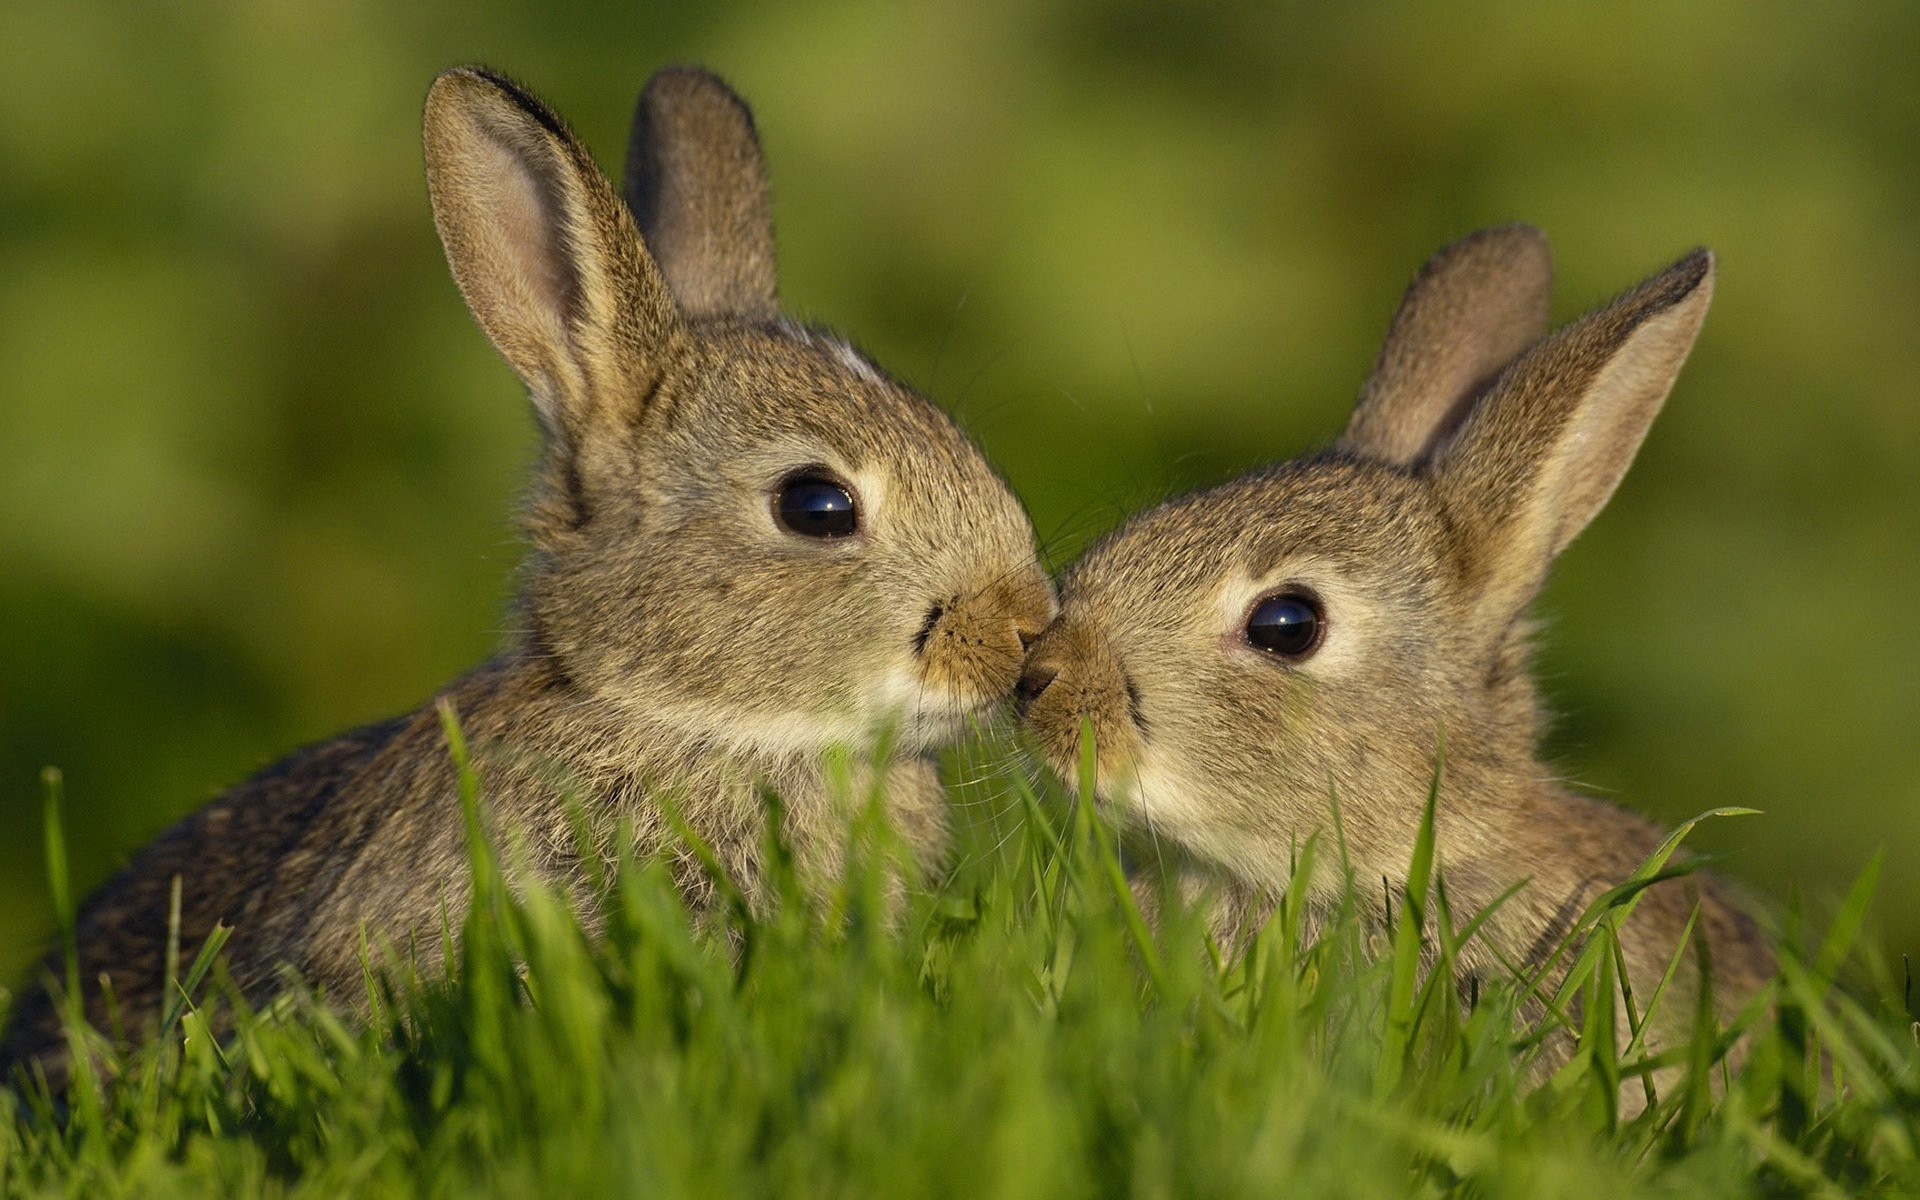 46138 download wallpaper Animals, Rabbits screensavers and pictures for free